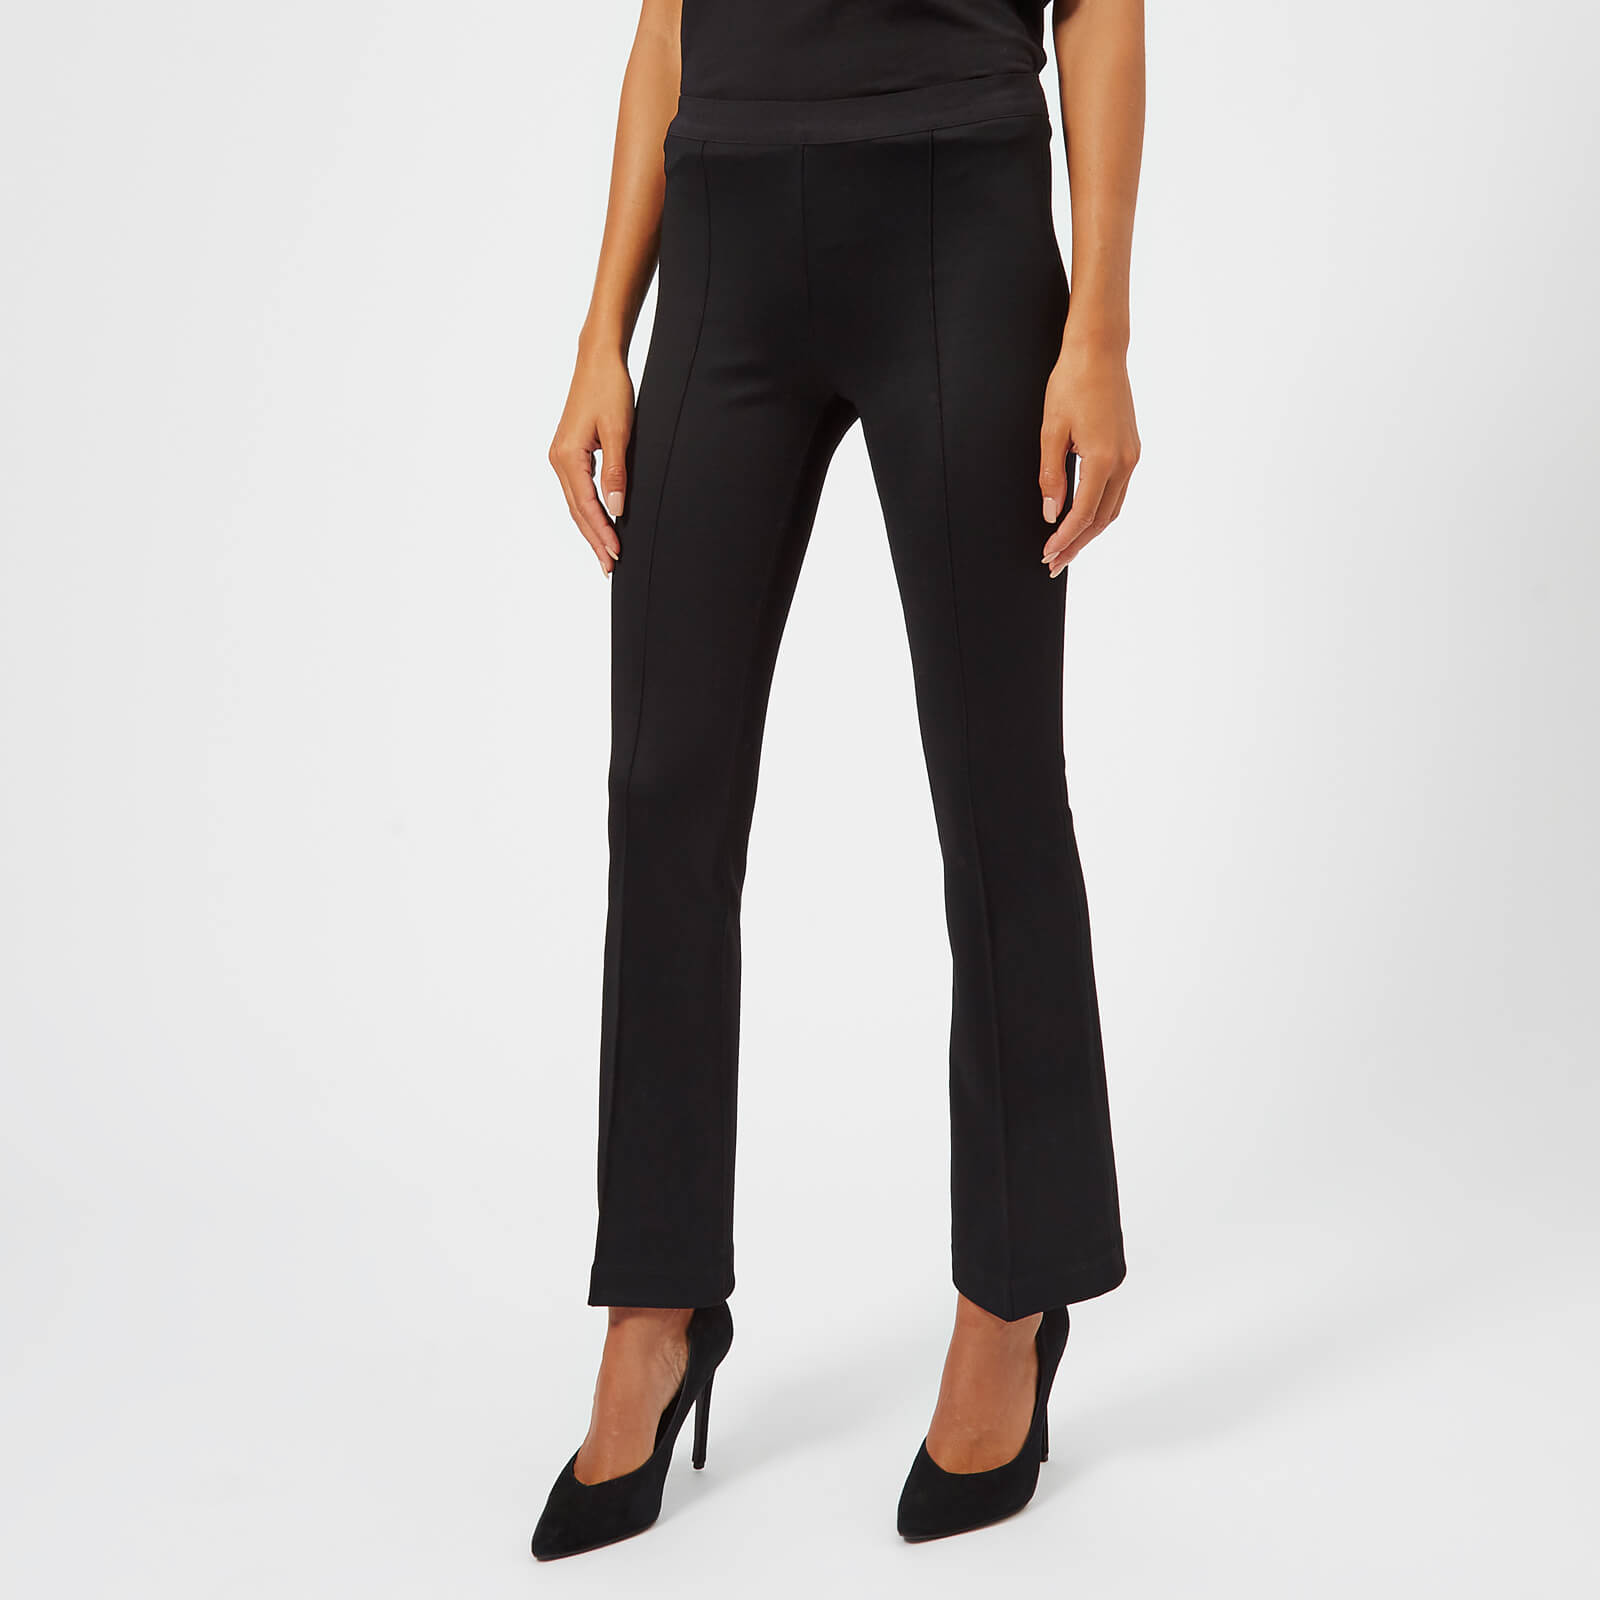 2f6021ae0fd098 Helmut Lang Women's Cropped Flare Rib Trousers - Black - Free UK Delivery  over £50